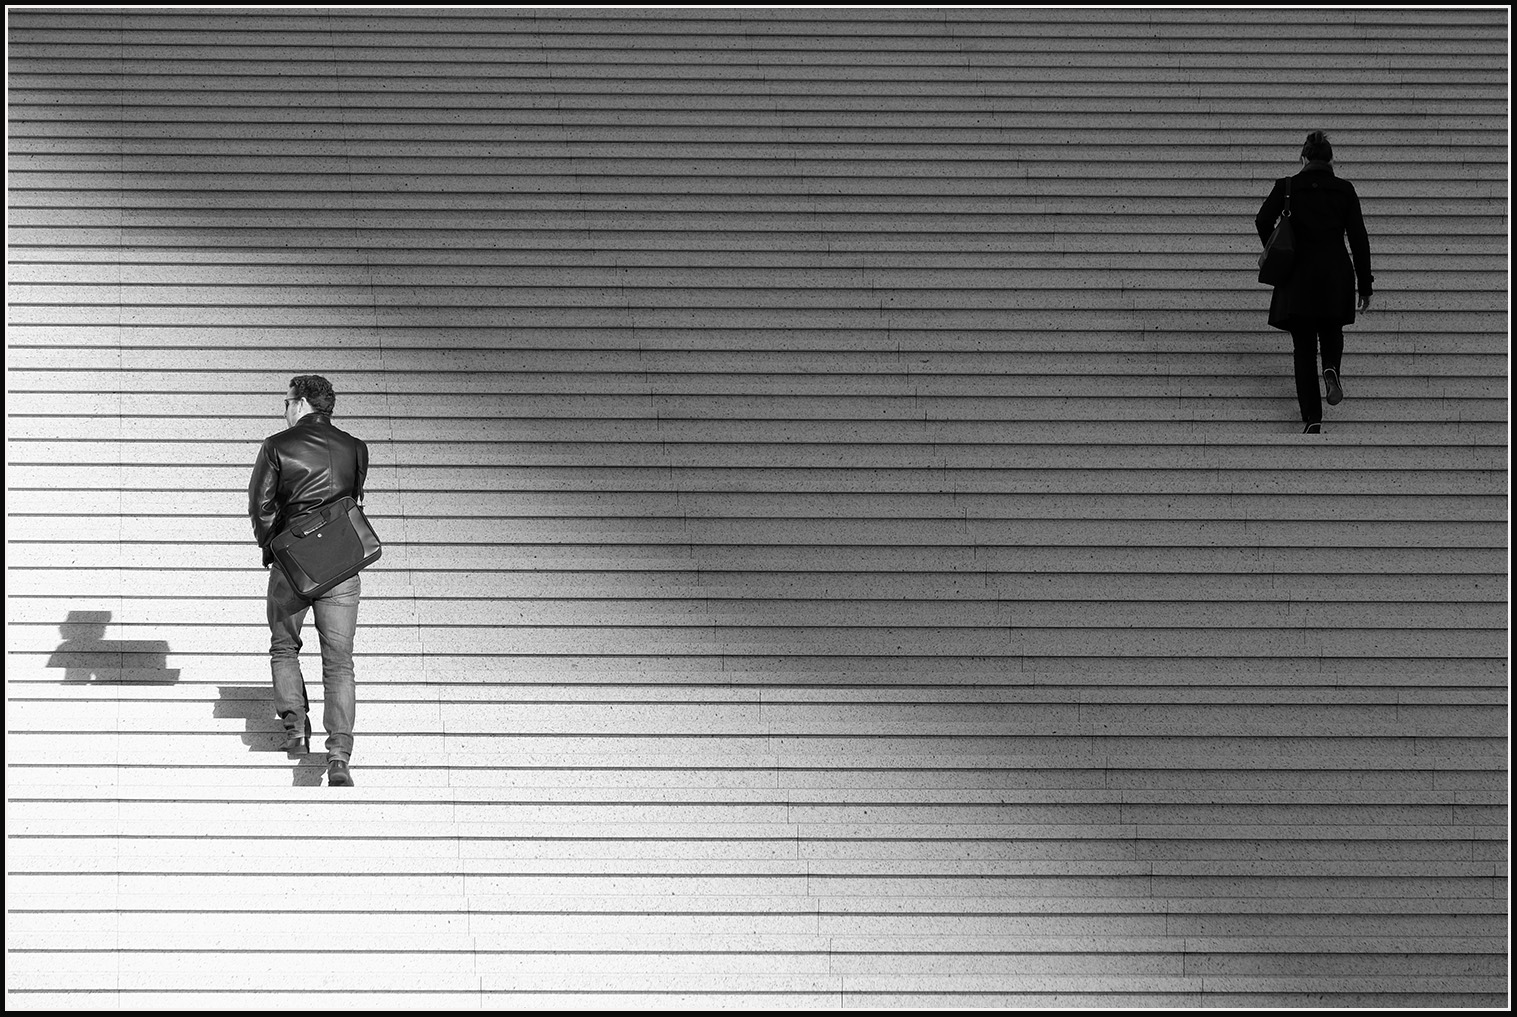 Paris - La Défense District - Stairs leading to: La Grande Arche de la Défense   Fuji XT1 with Fujinon XF 18-135mm © 2017 Miguel Witte